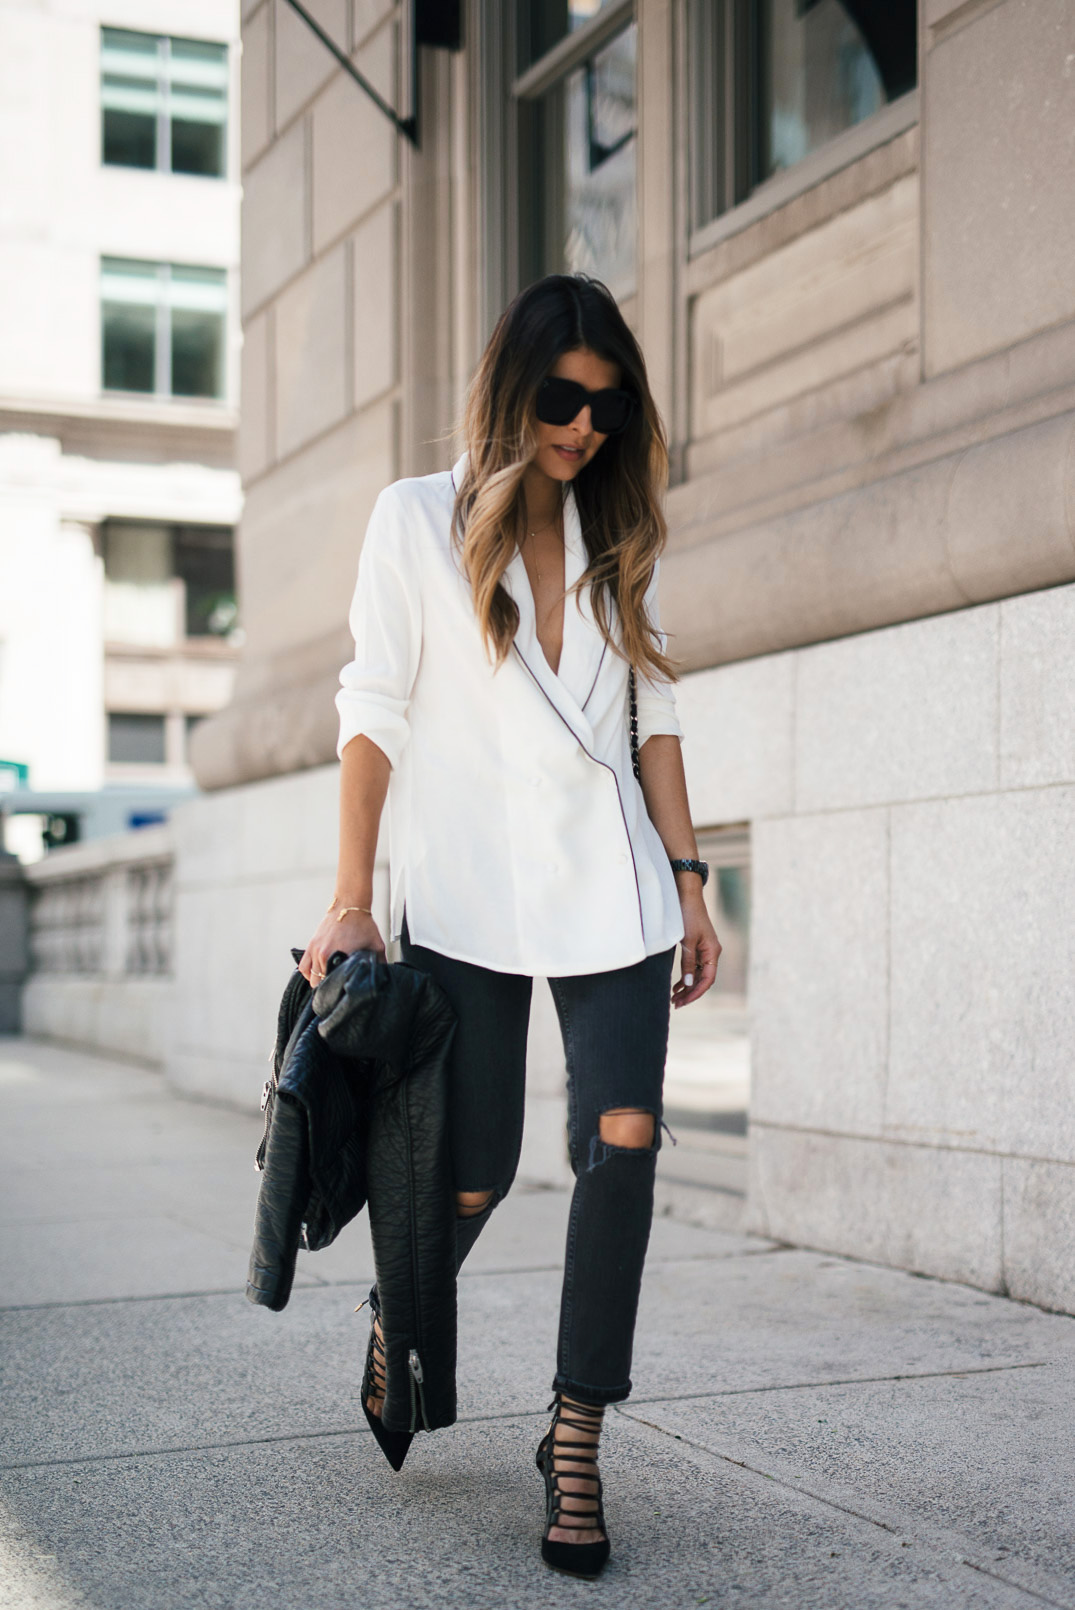 Pam Hetlinger plays with proportions by teaming up her silk oversized pyjama inspired shirt with ripped skinny jeans. She adds some height with lace up heels and a trusty leather biker jacket for that flawless city style. Top: Mango, Jeans: Asos, Watch: Chanel, Necklace: The Girl From Panama x Mejuri, Heels: Aquazzura